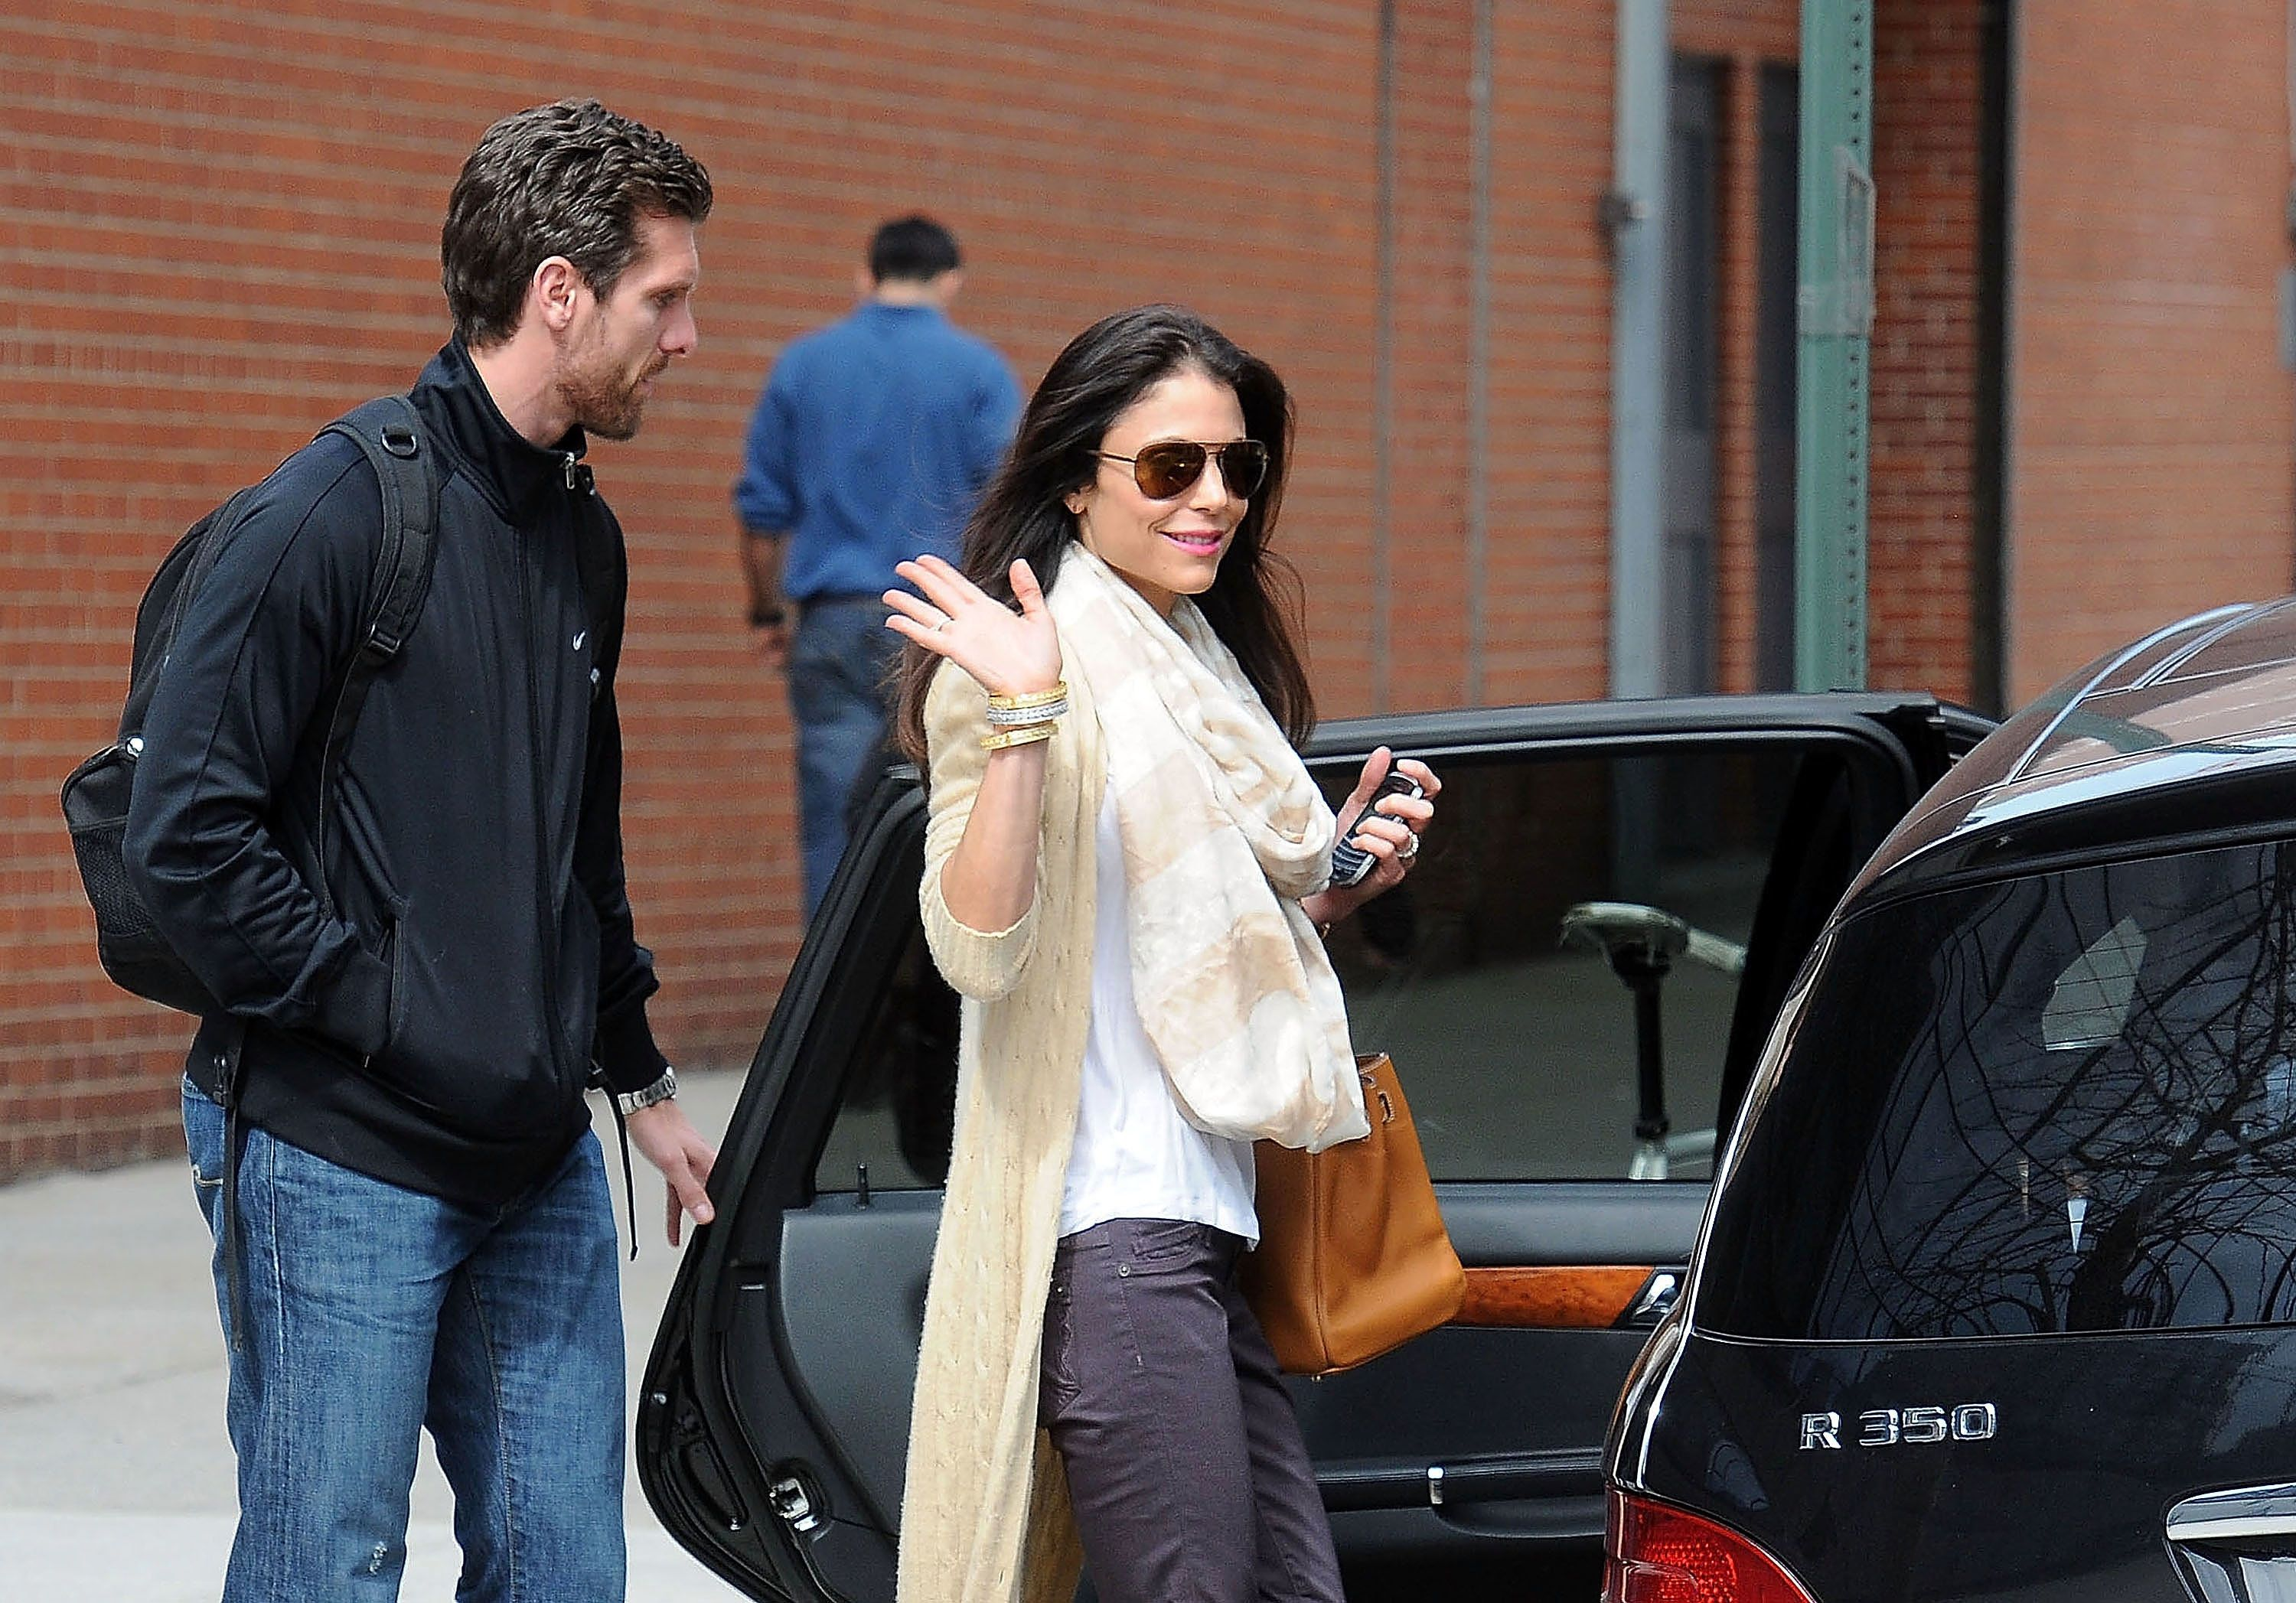 NEW YORK, NY - MARCH 12: Bethenny Frankel (R) and Jason Hoppy are seen on March 12, 2012 in New York City.  (Photo by Mario Magnani/Bauer-Griffin/GC Images)